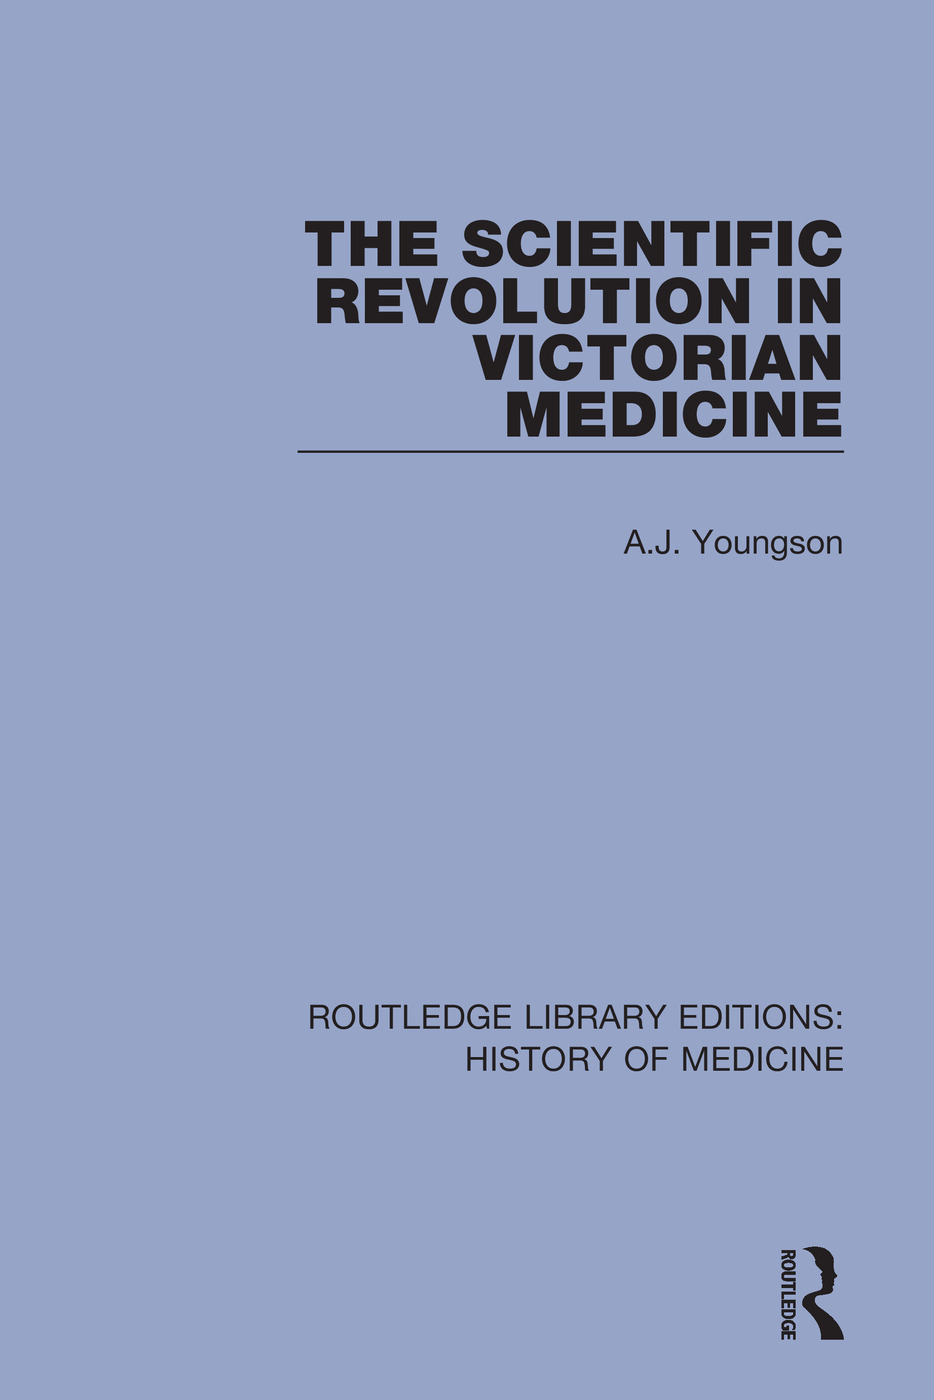 The Scientific Revolution in Victorian Medicine book cover